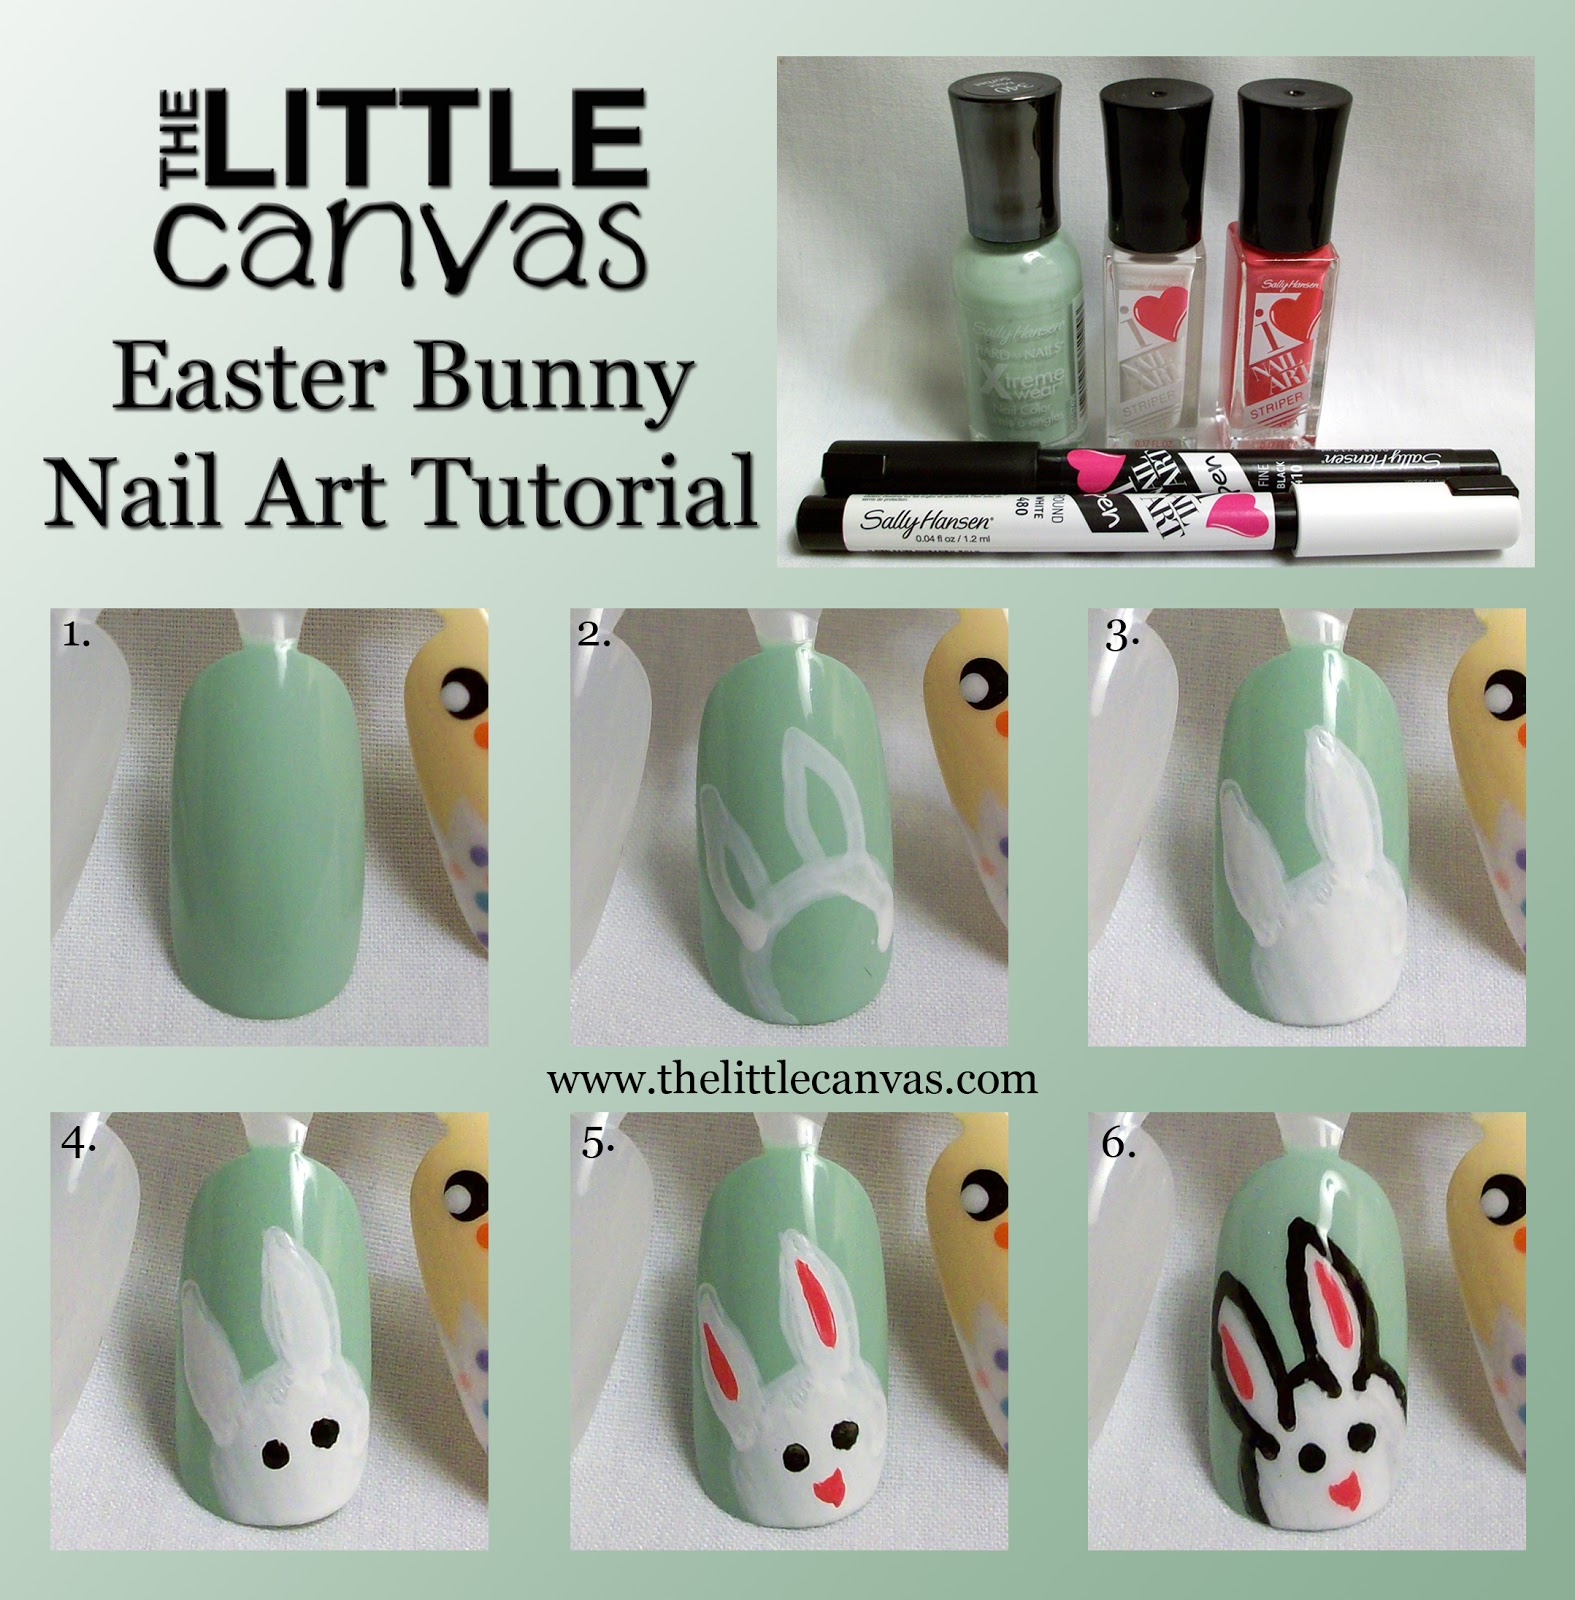 Easter Bunny Nail Art Tutorial with Sally Hansen - The Little Canvas